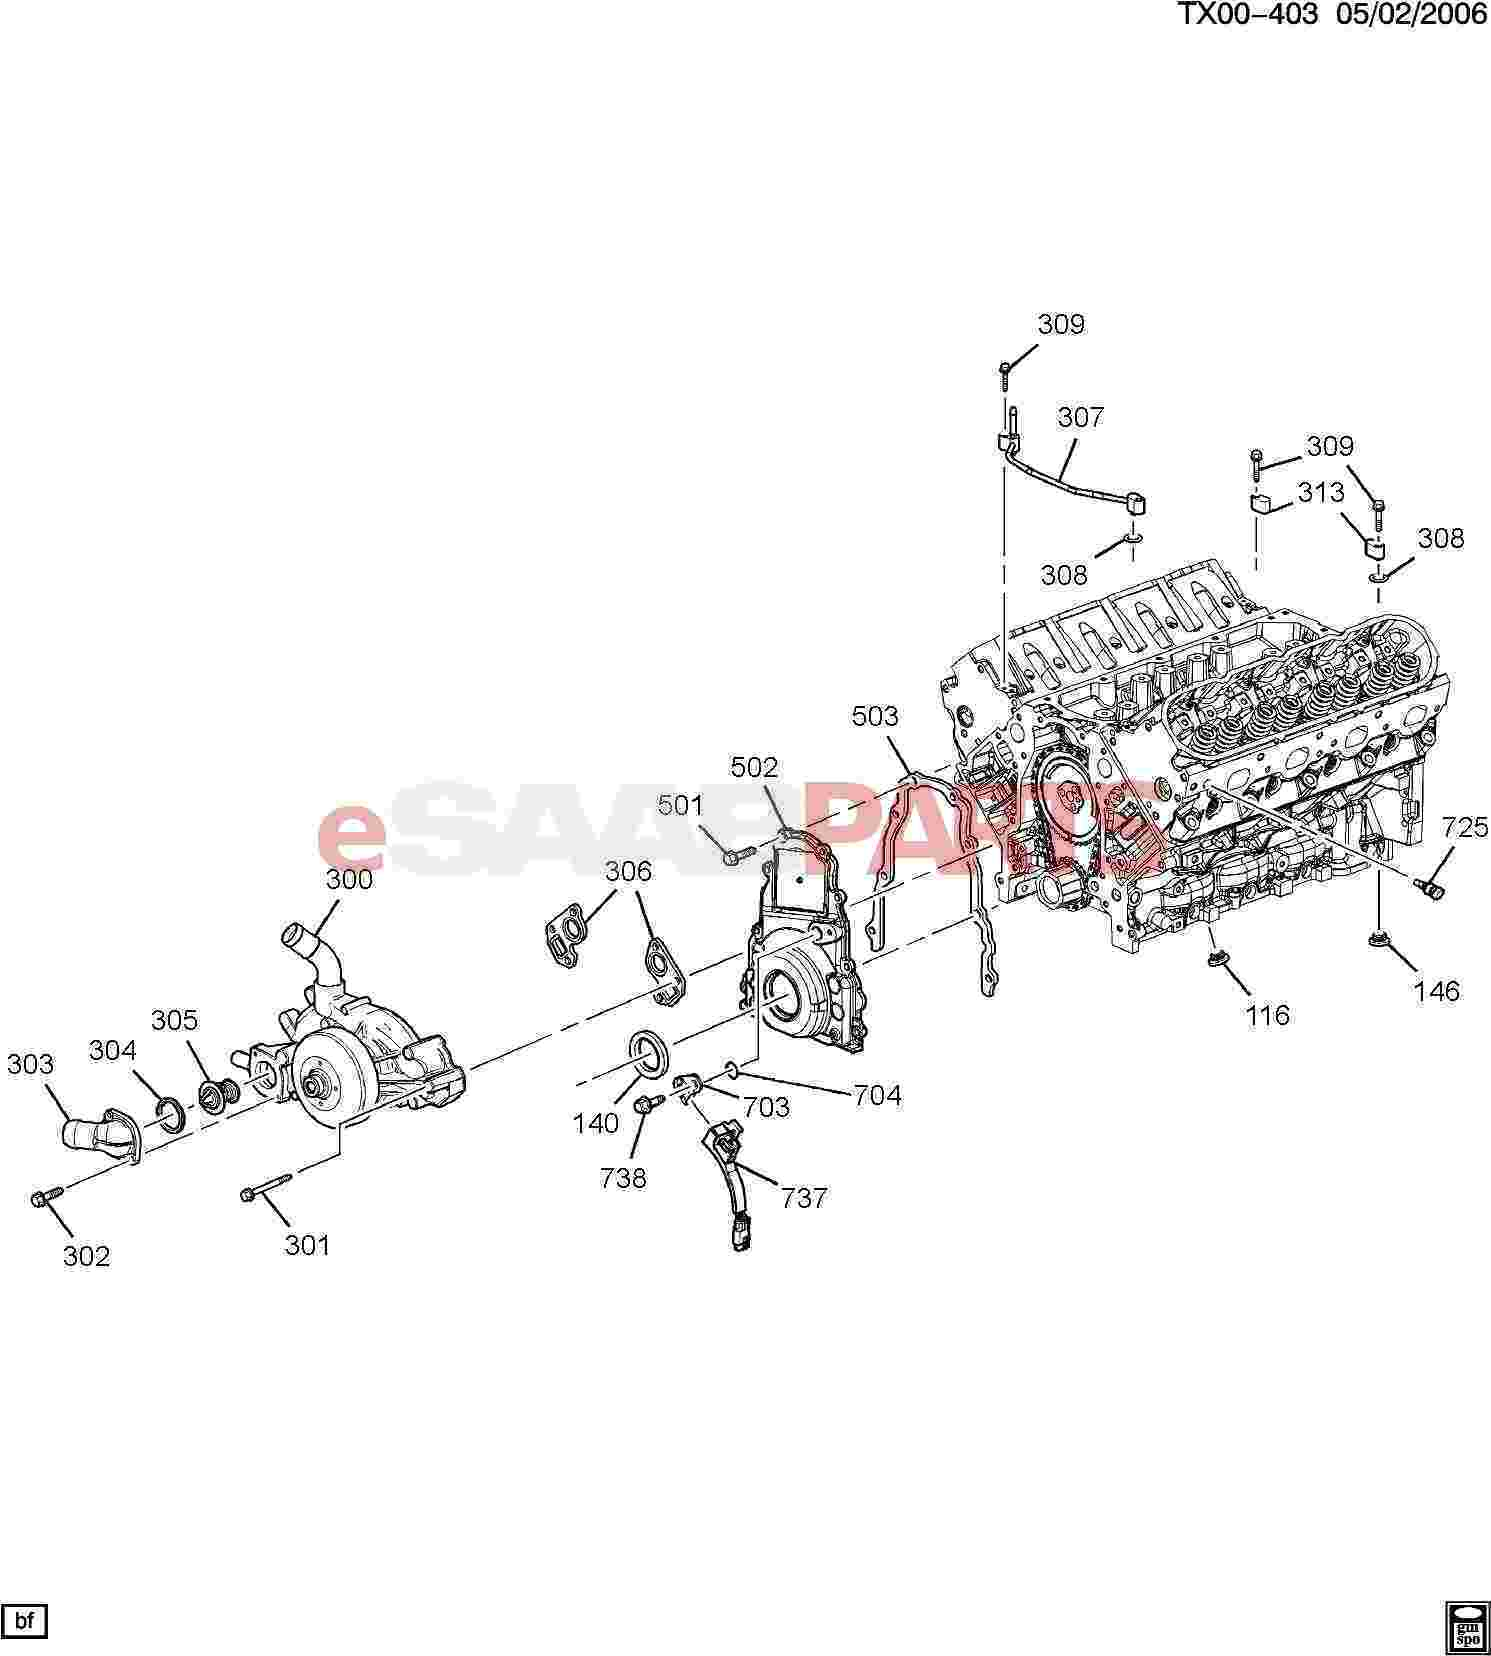 [12561663] SAAB Plug, Engine Block, Black Coolant Drain